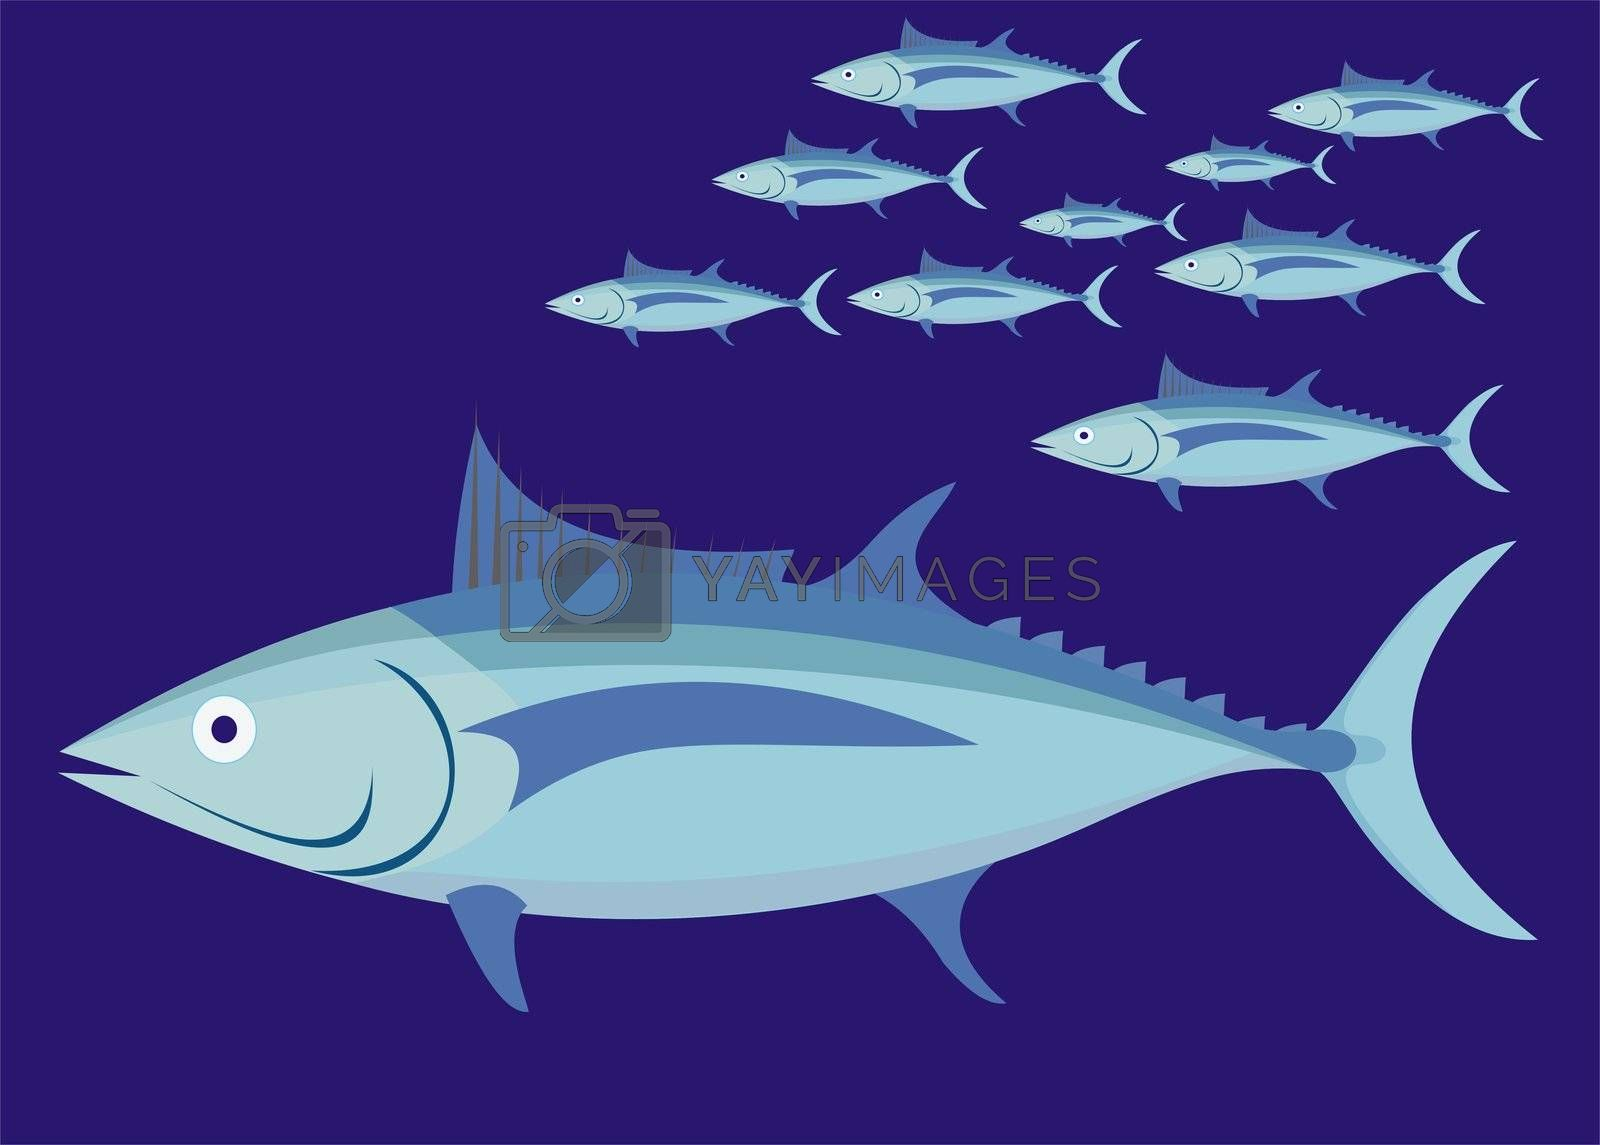 tuna fish illustration, no gradie6ts